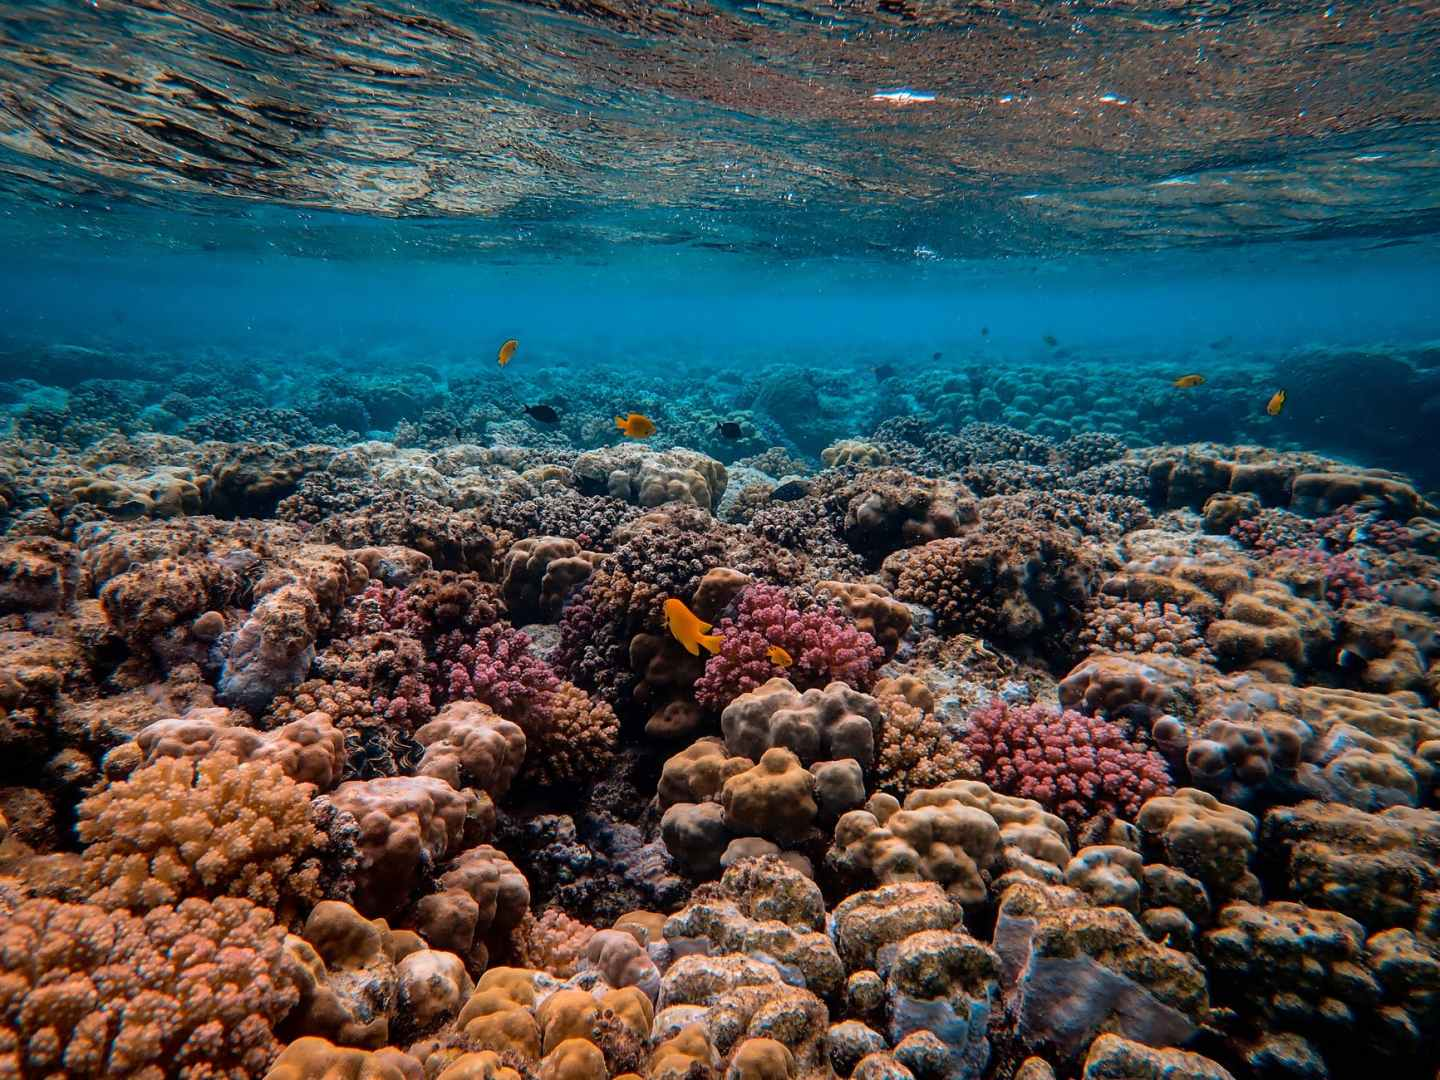 scenic photo of coral reef